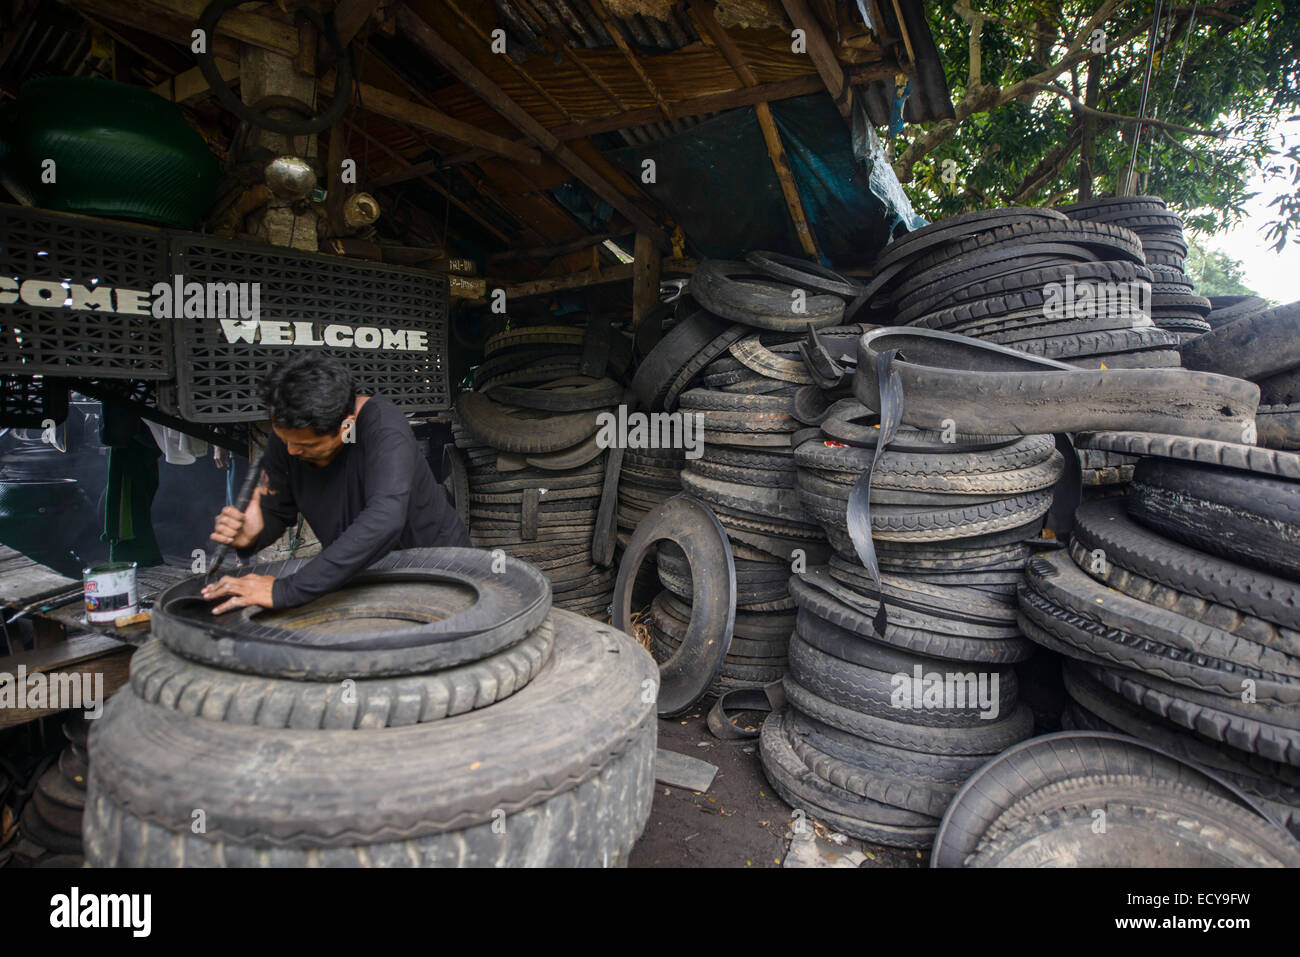 Recycling of old truck tires to build furniture, South Luzon, Philippines - Stock Image